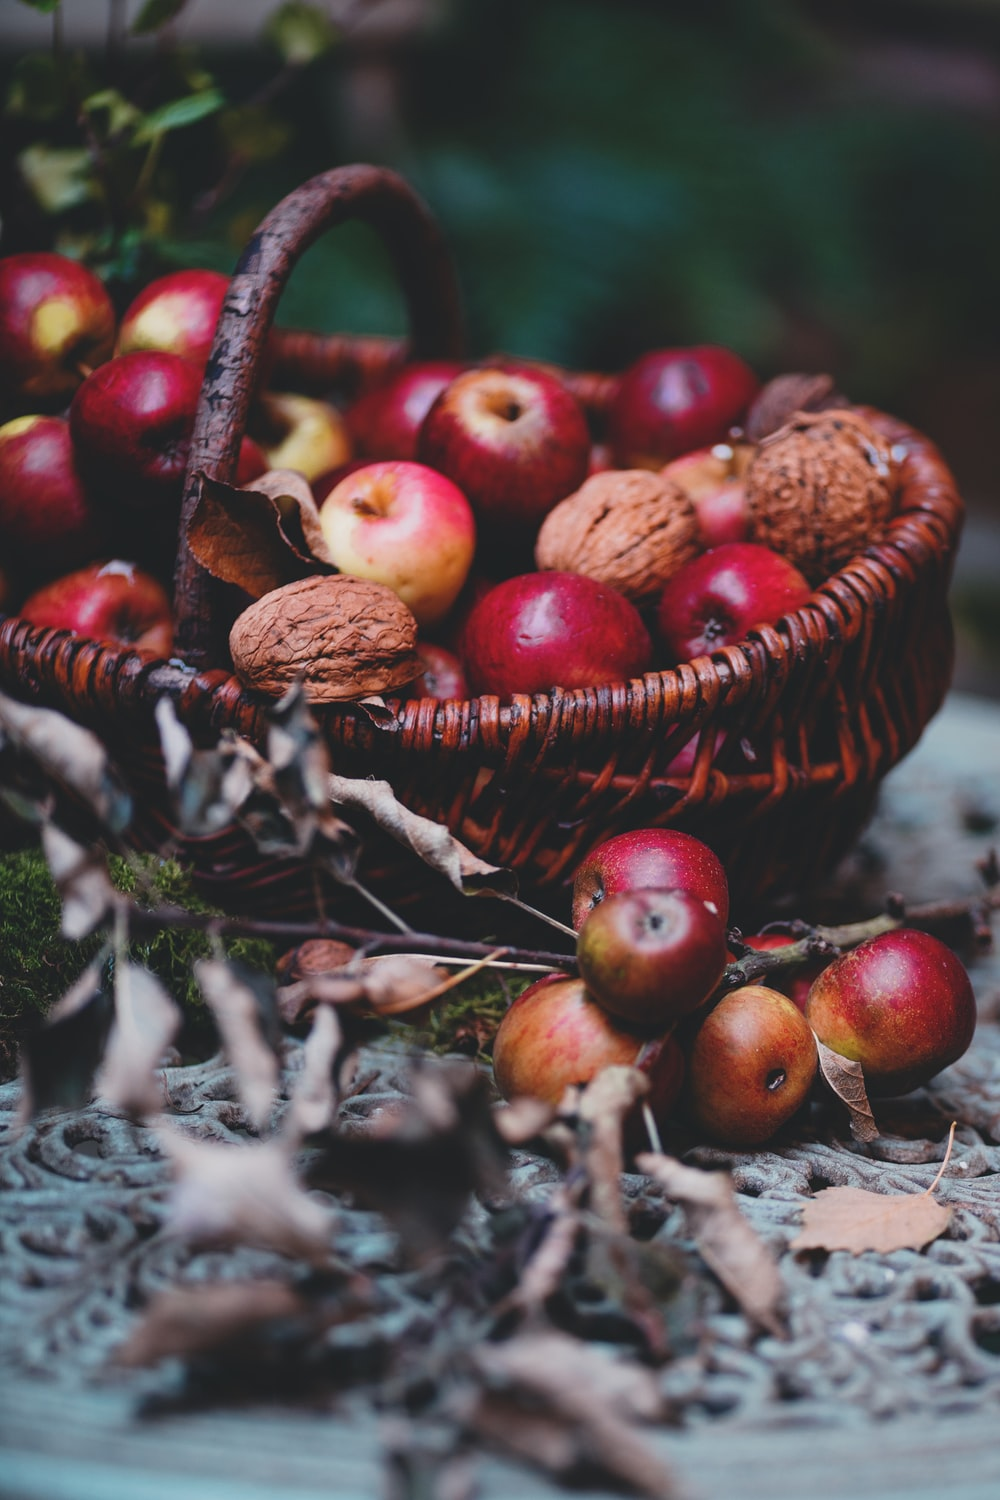 red apple fruits on brown wicker basket